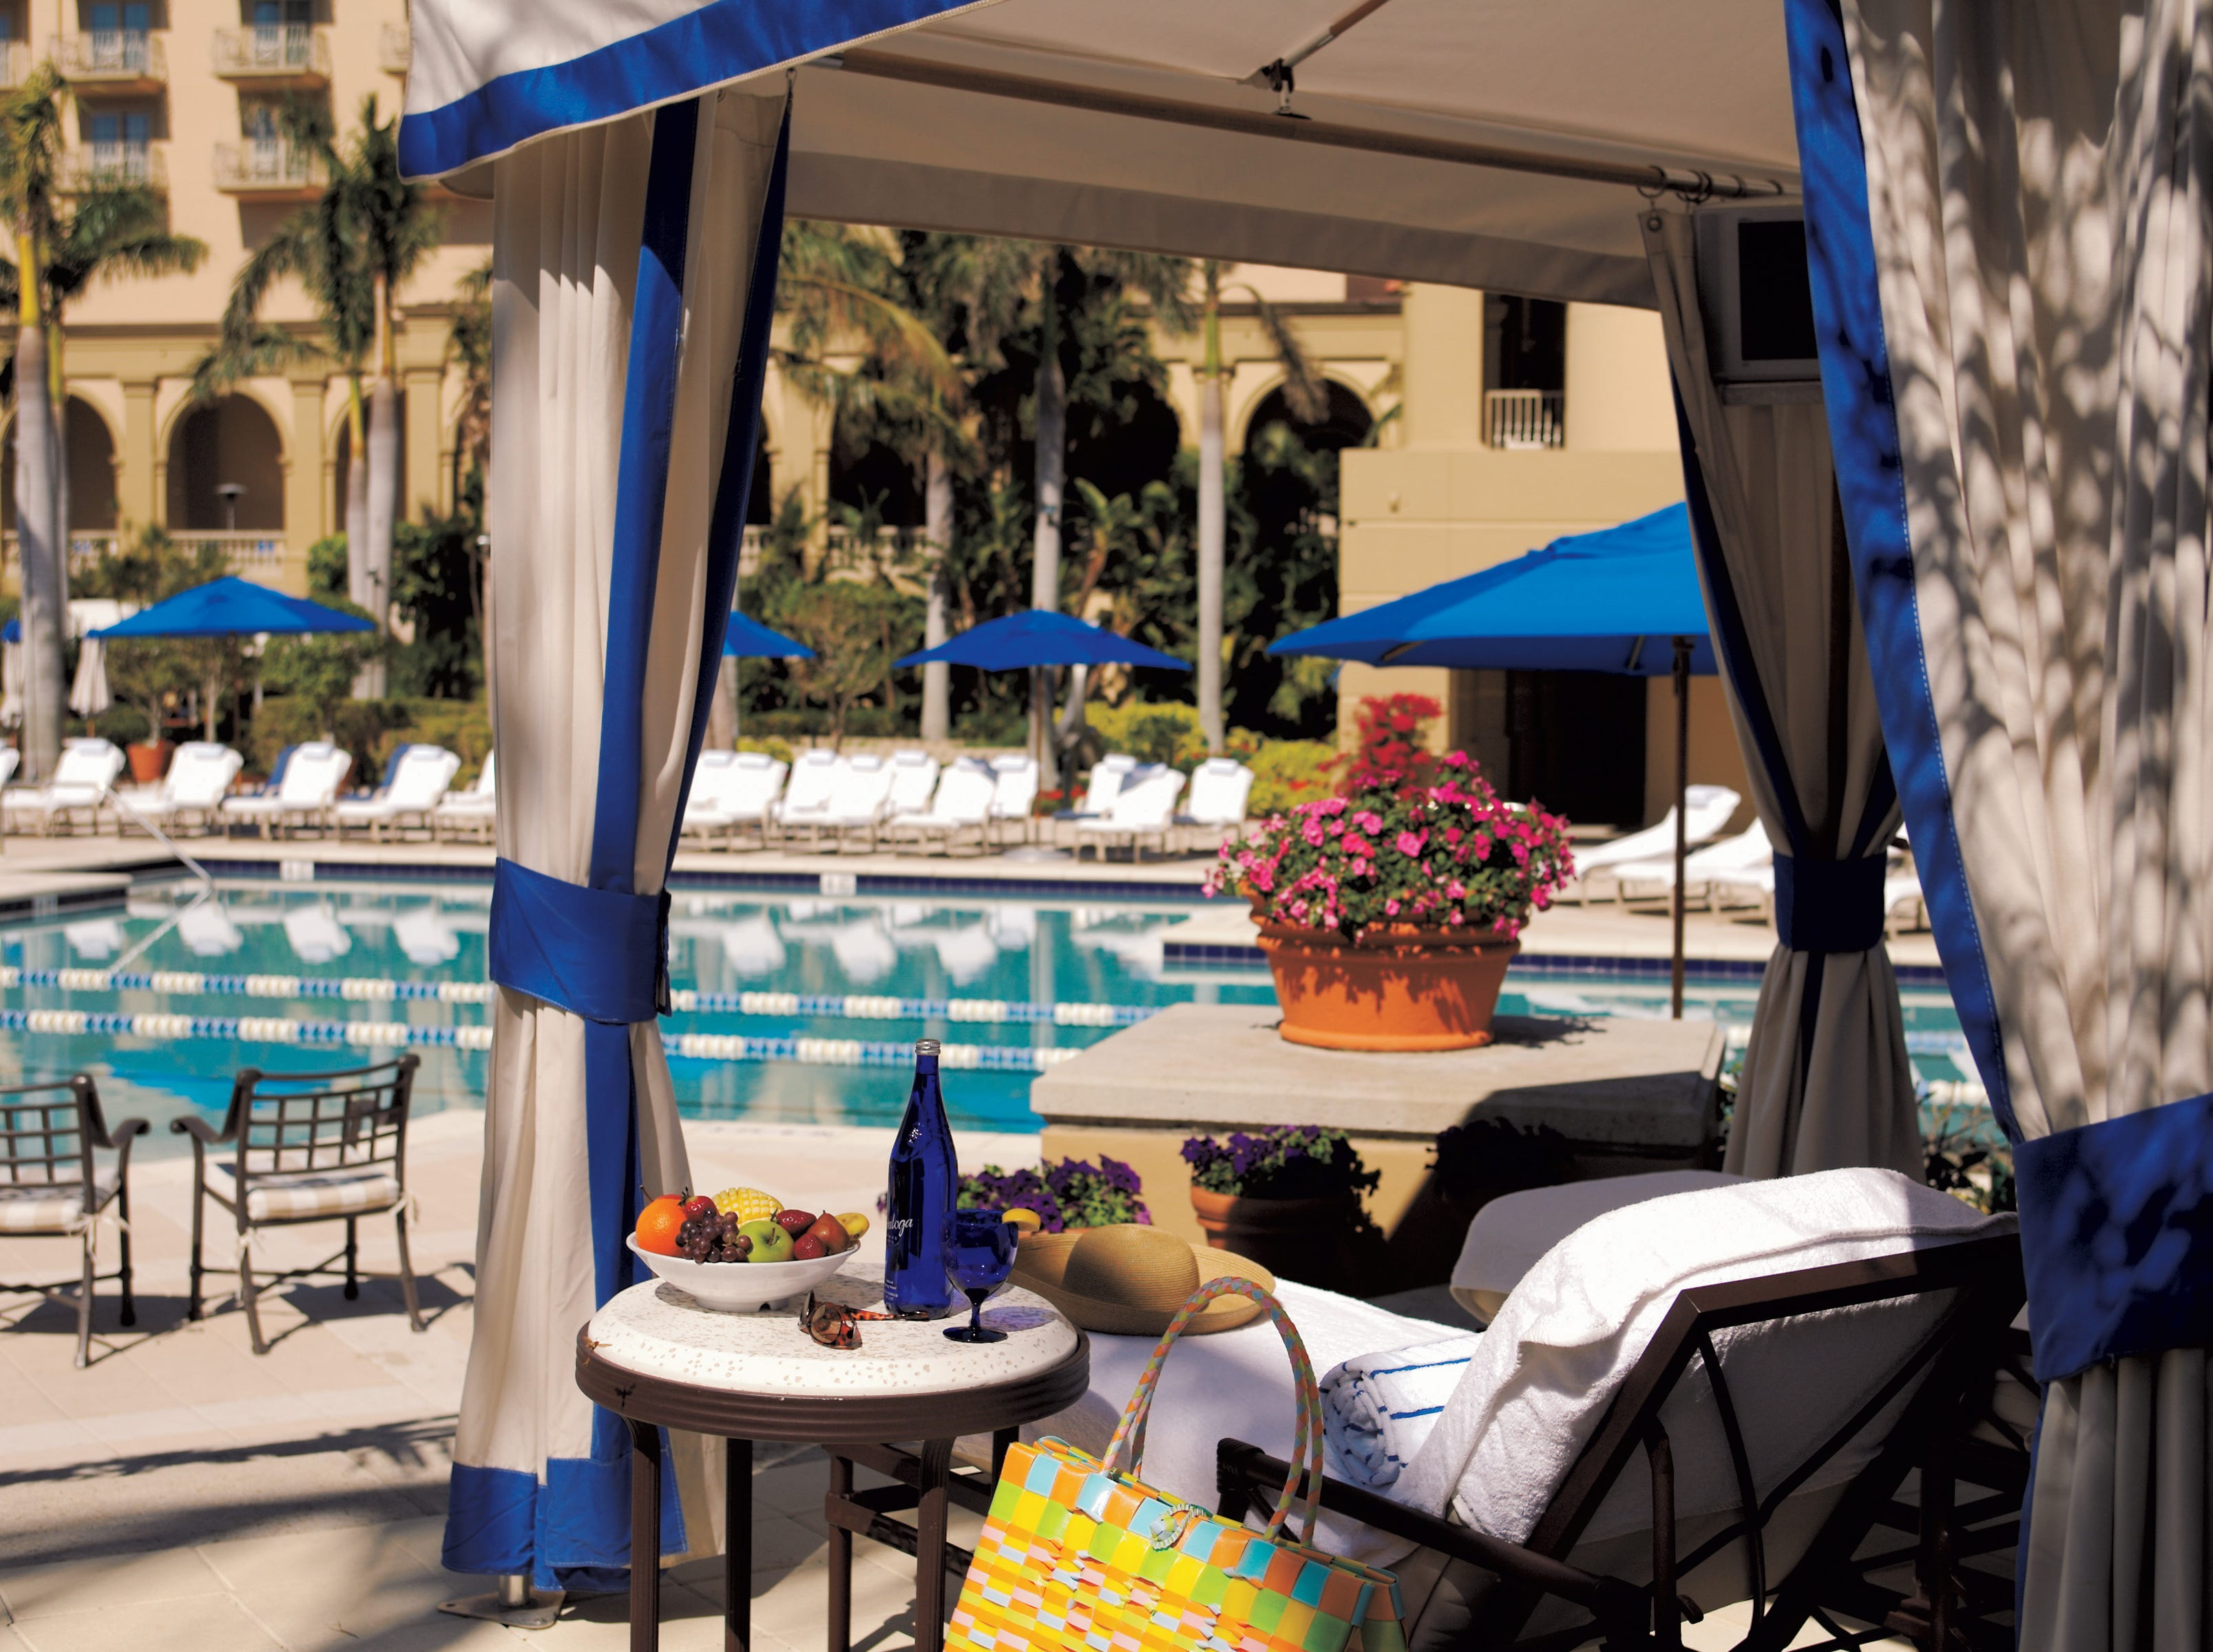 The poolside cabanas at the Ritz-Carlton Naples in southwest Florida. The poolside cabana experience includes a butler, free bottled water and soft drinks, DirectTV, fruit and more.  Regular cabanas start at $399 a day, deluxe cabanas at $599.